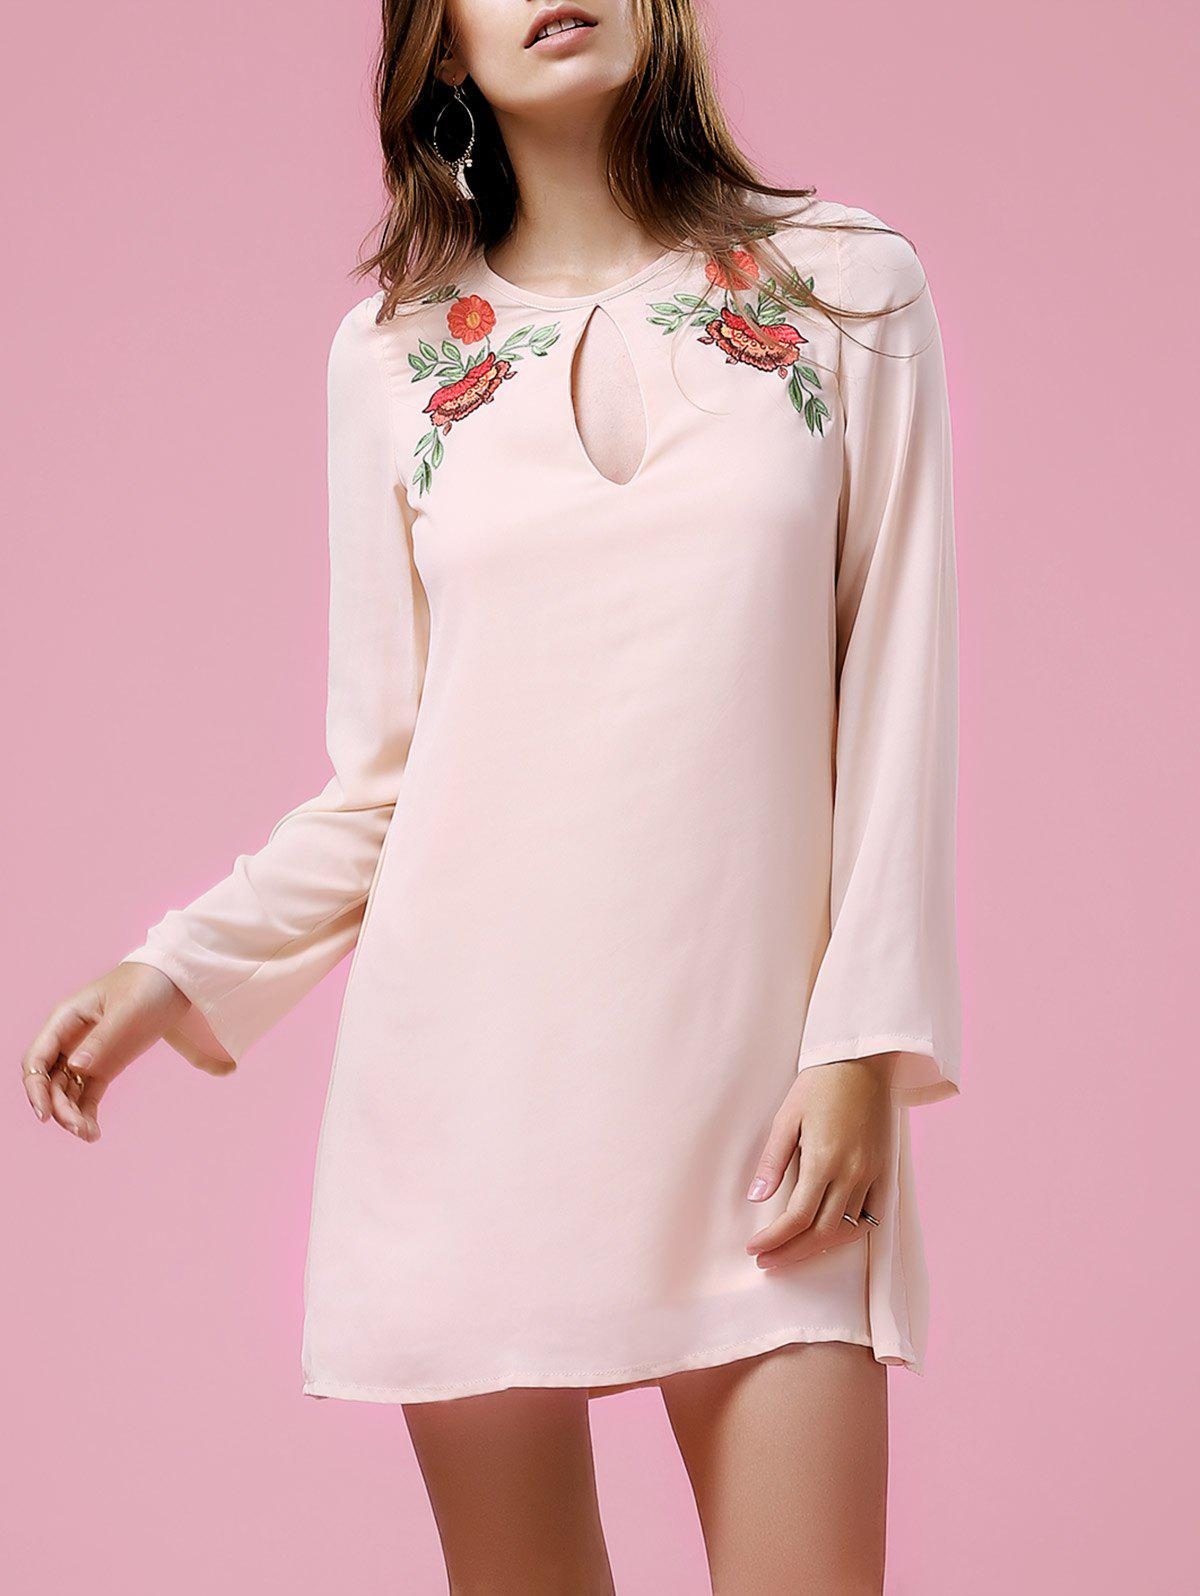 Casual Women's Long Sleeve Round Neck Floral Embroidery Dress - LIGHT PINK XL